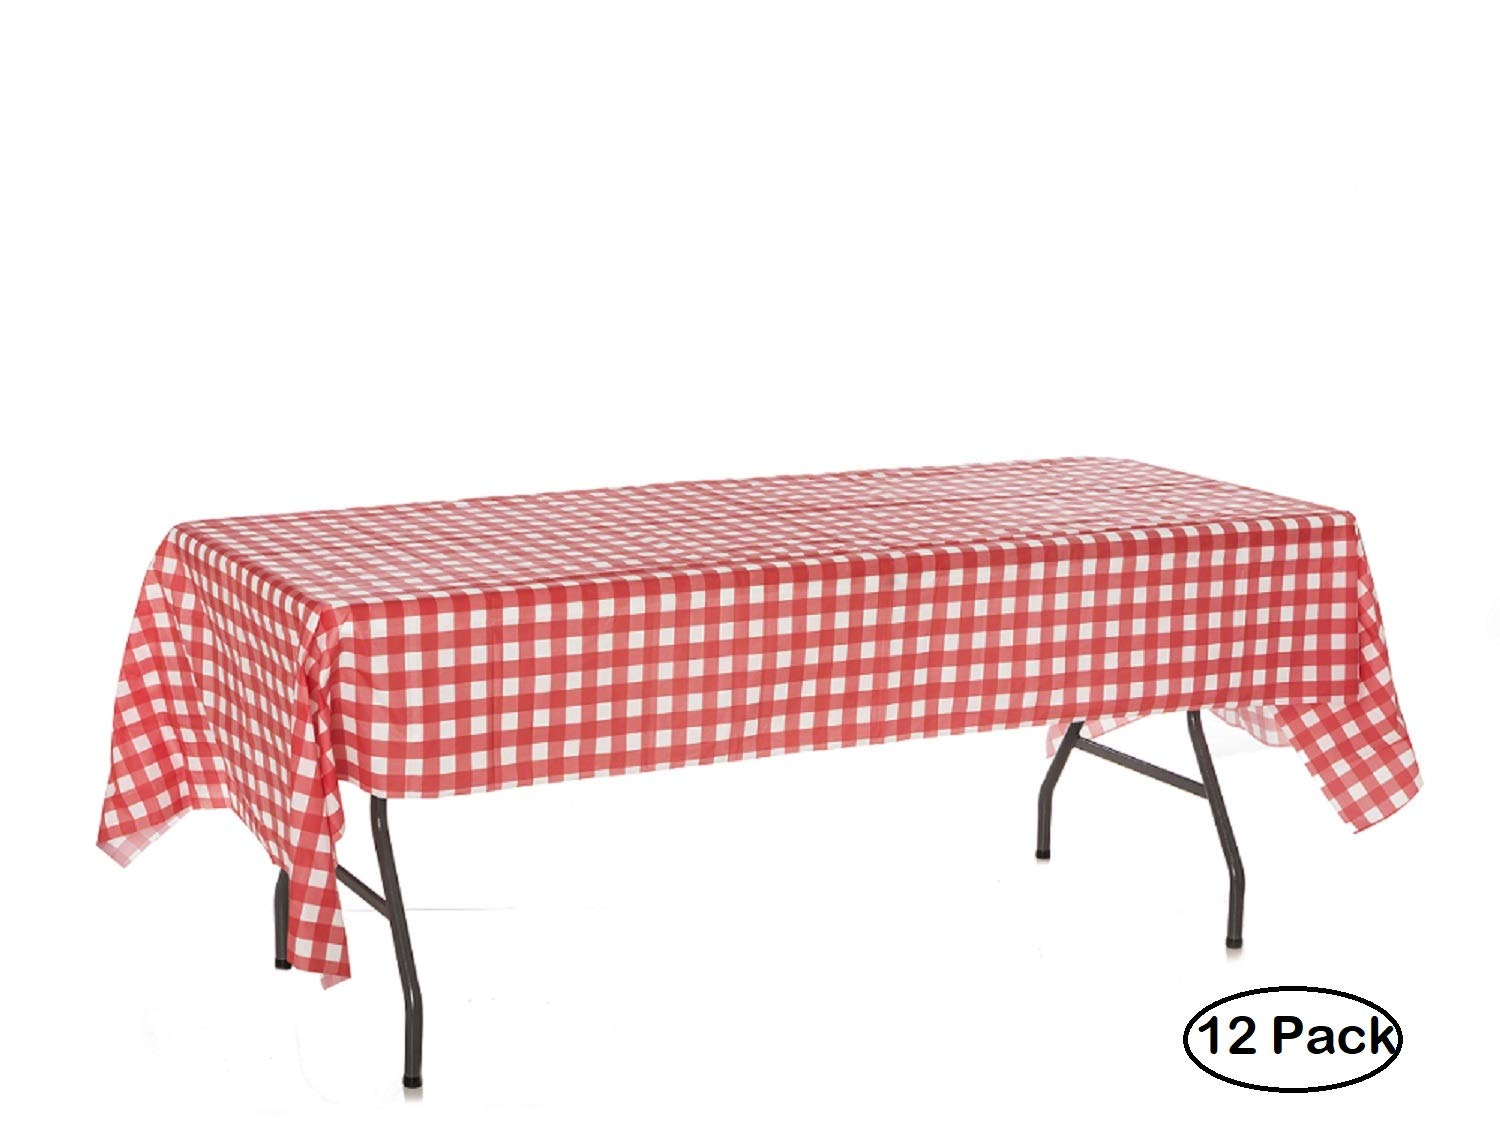 Pack of 12 Plastic Red and White Checkered Tablecloths - 12 Pack - Picnic Table Covers Gingham by Oojami by Oojami